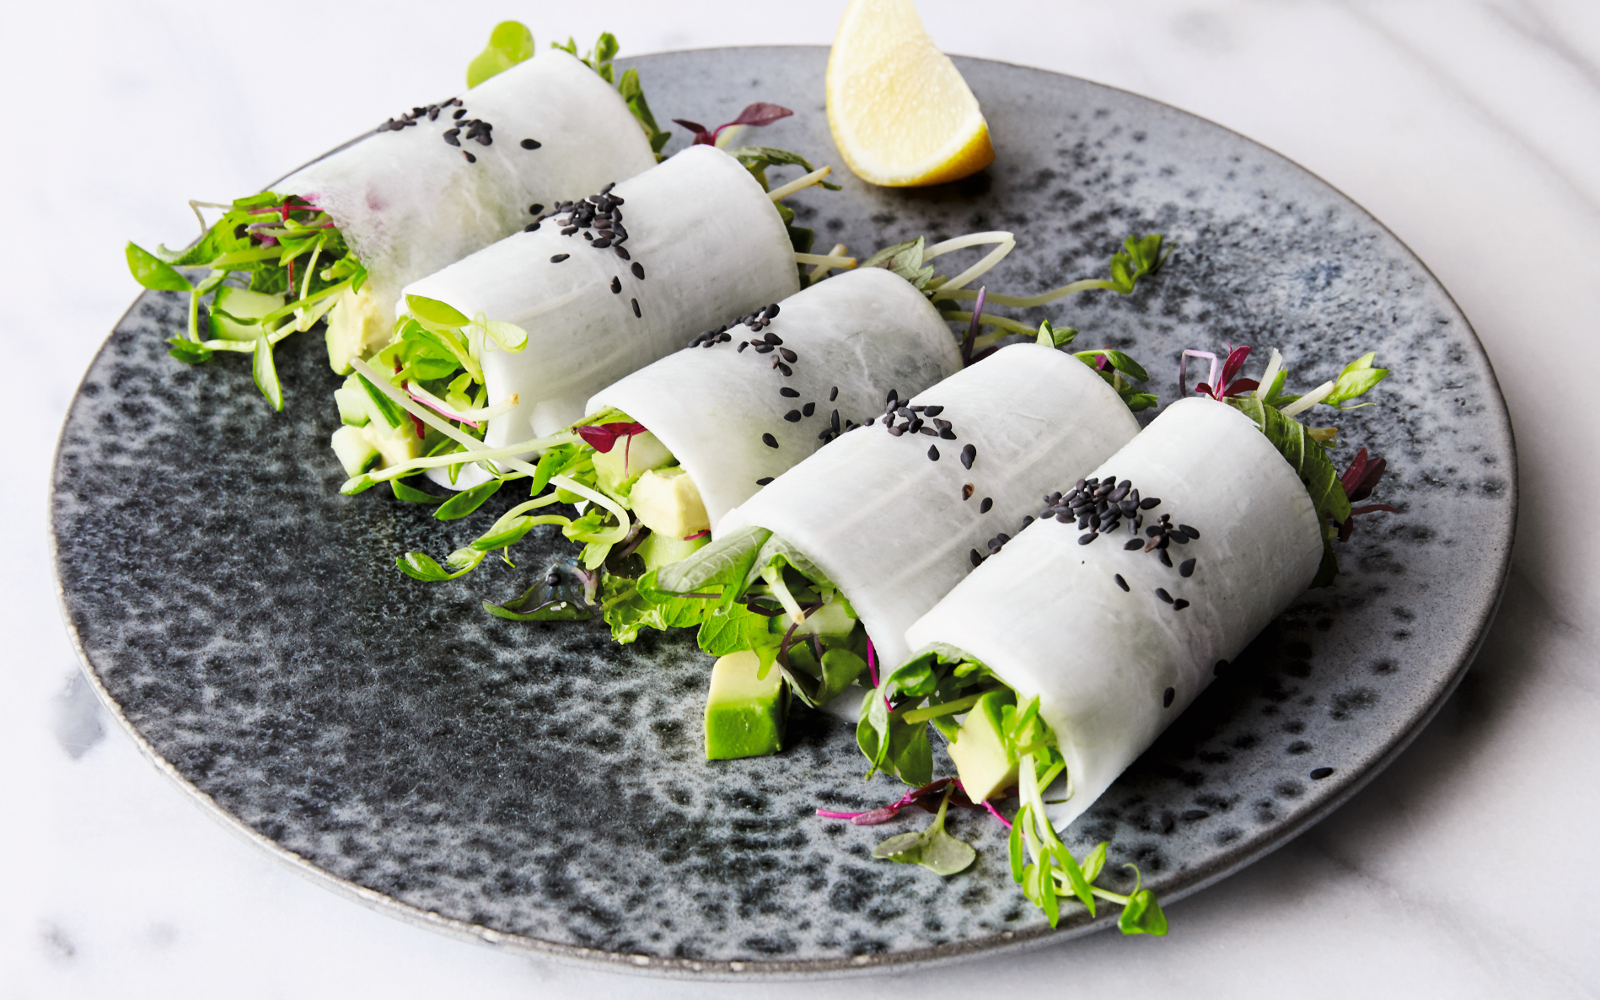 Daikon Rolls with Avocado and Micro Greens